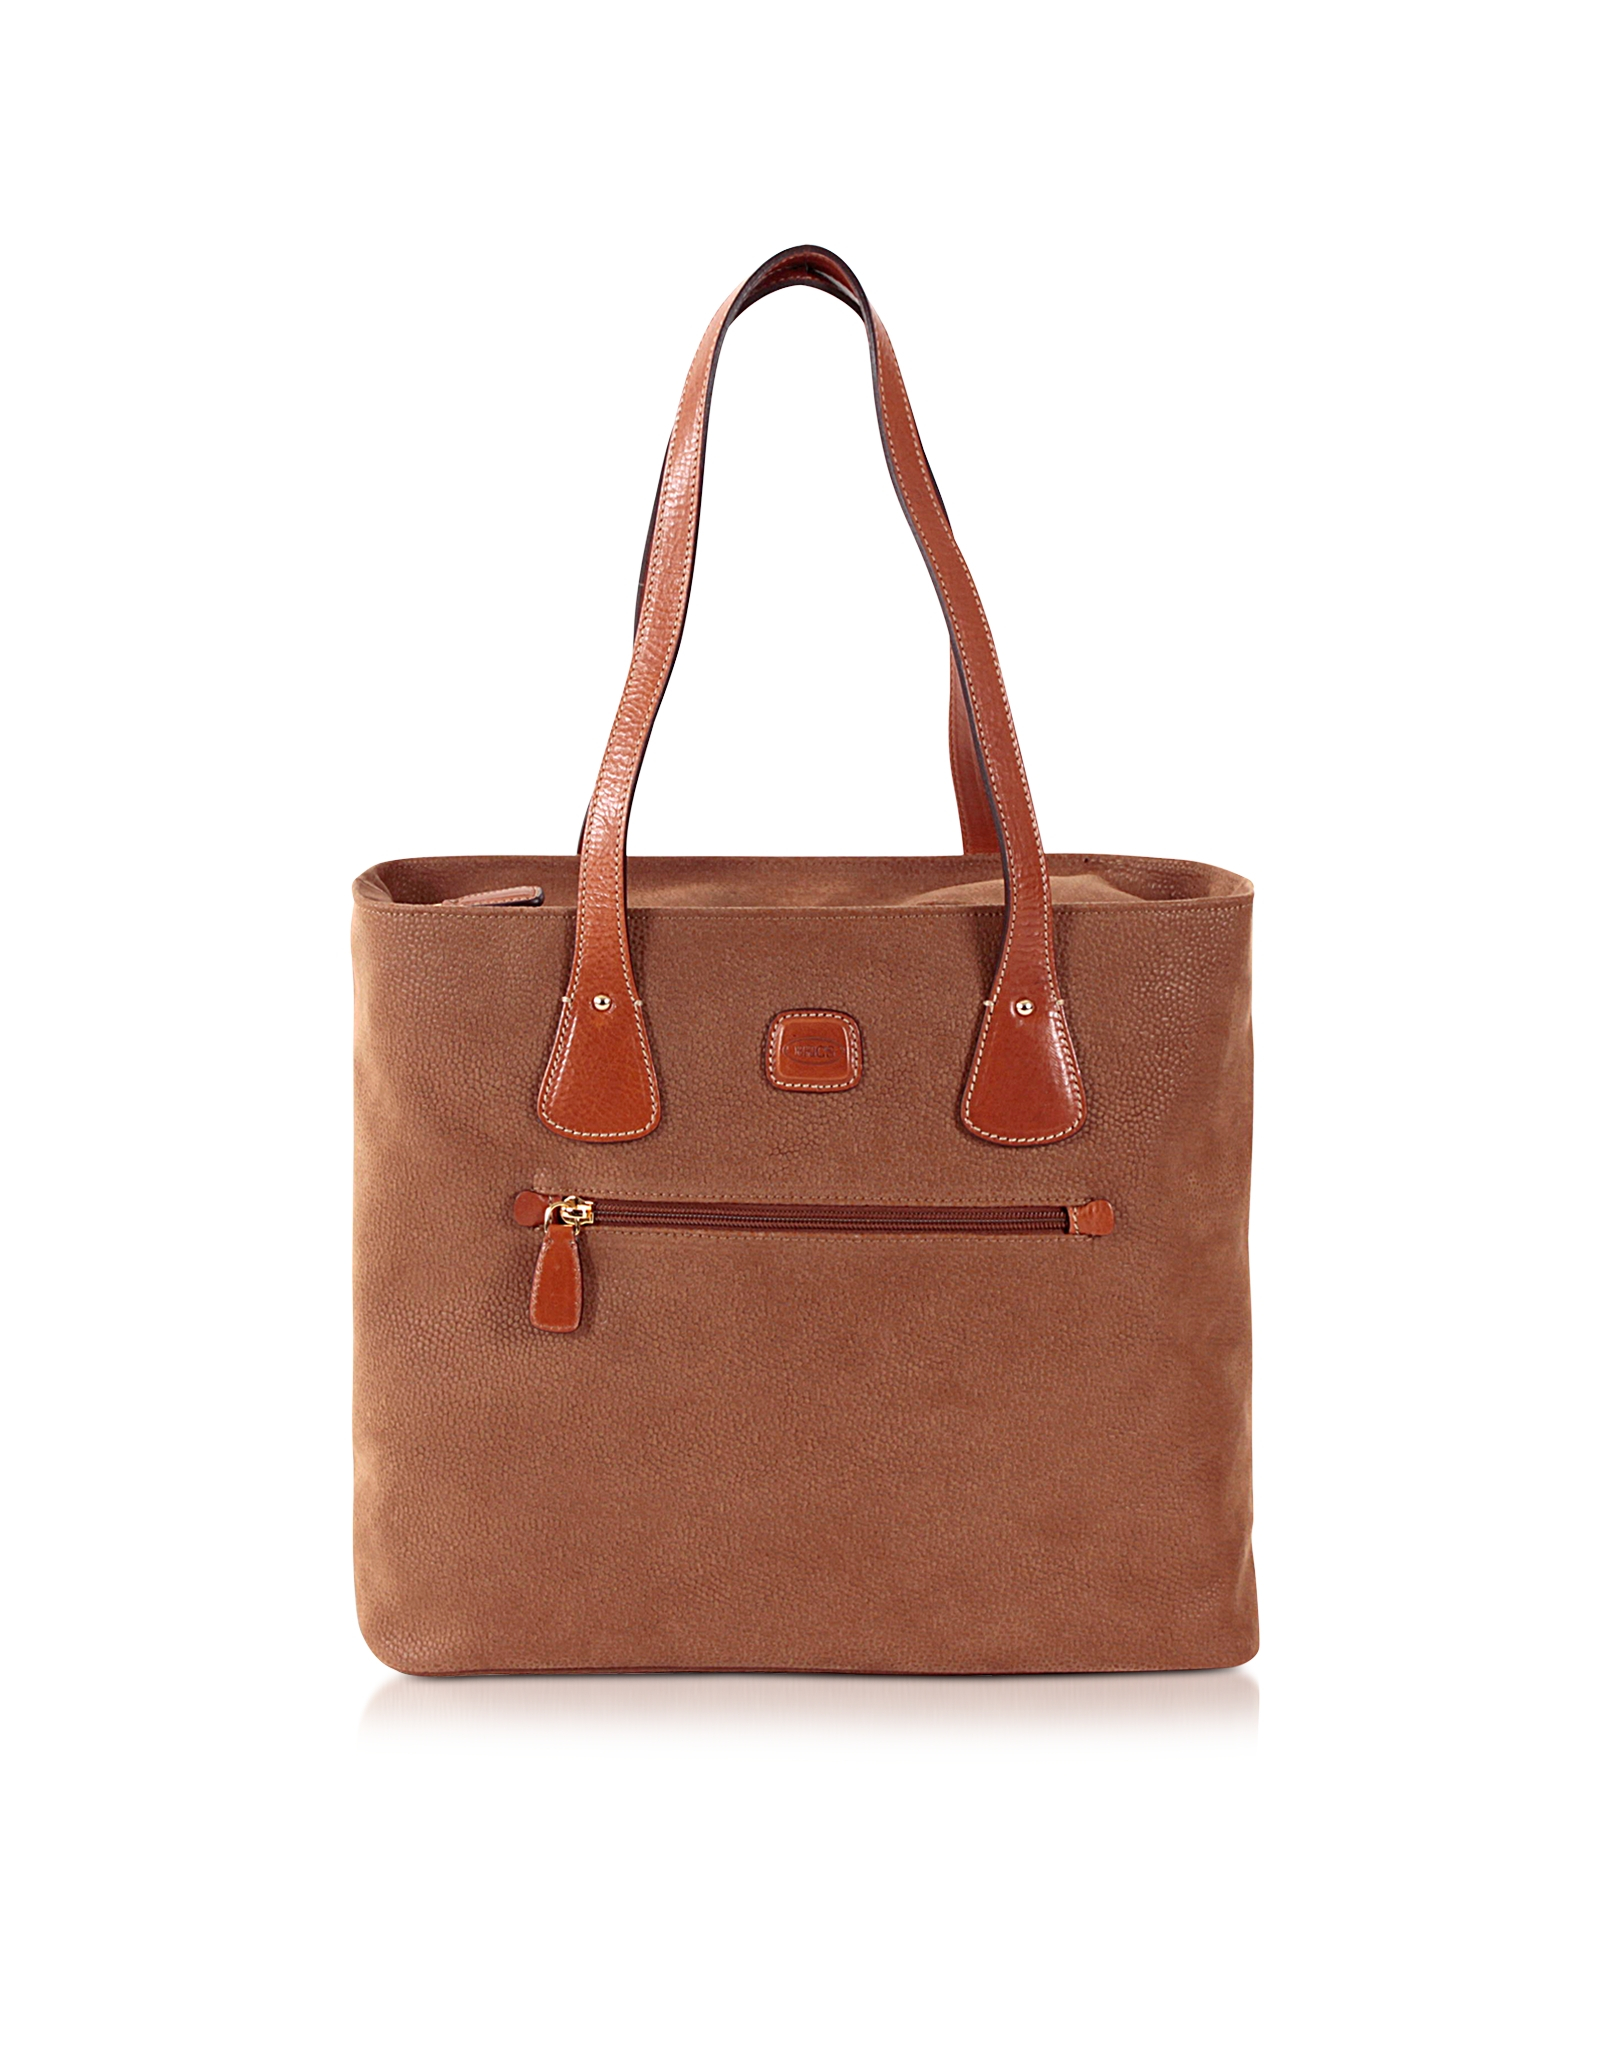 how to clean a suede tote bag